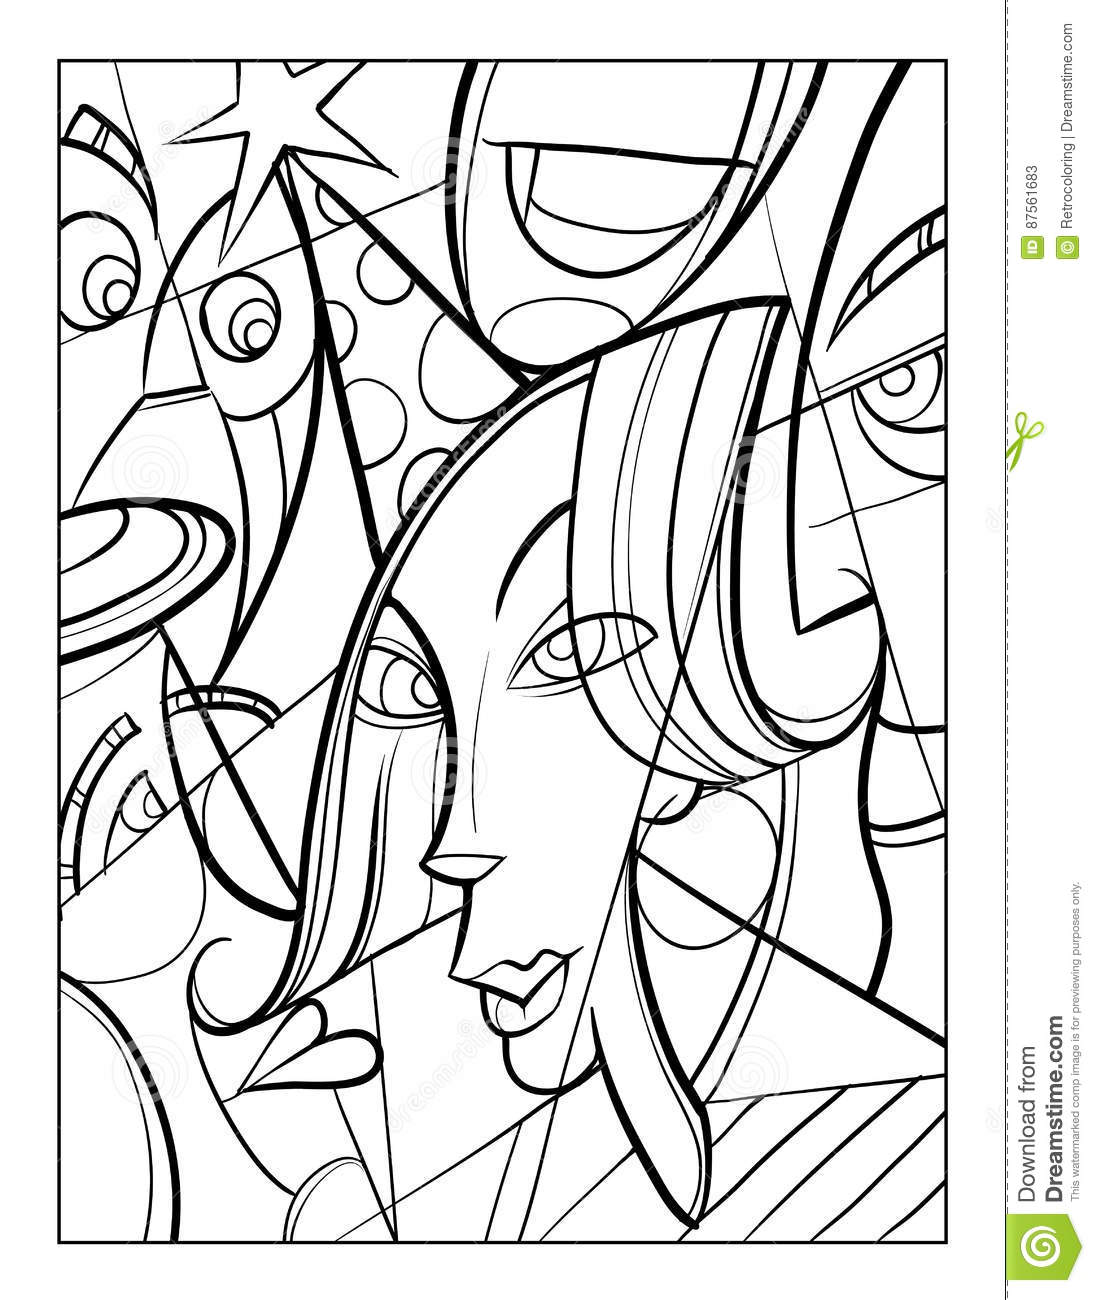 Cubist Faces Fun Coloring Page Stock Vector